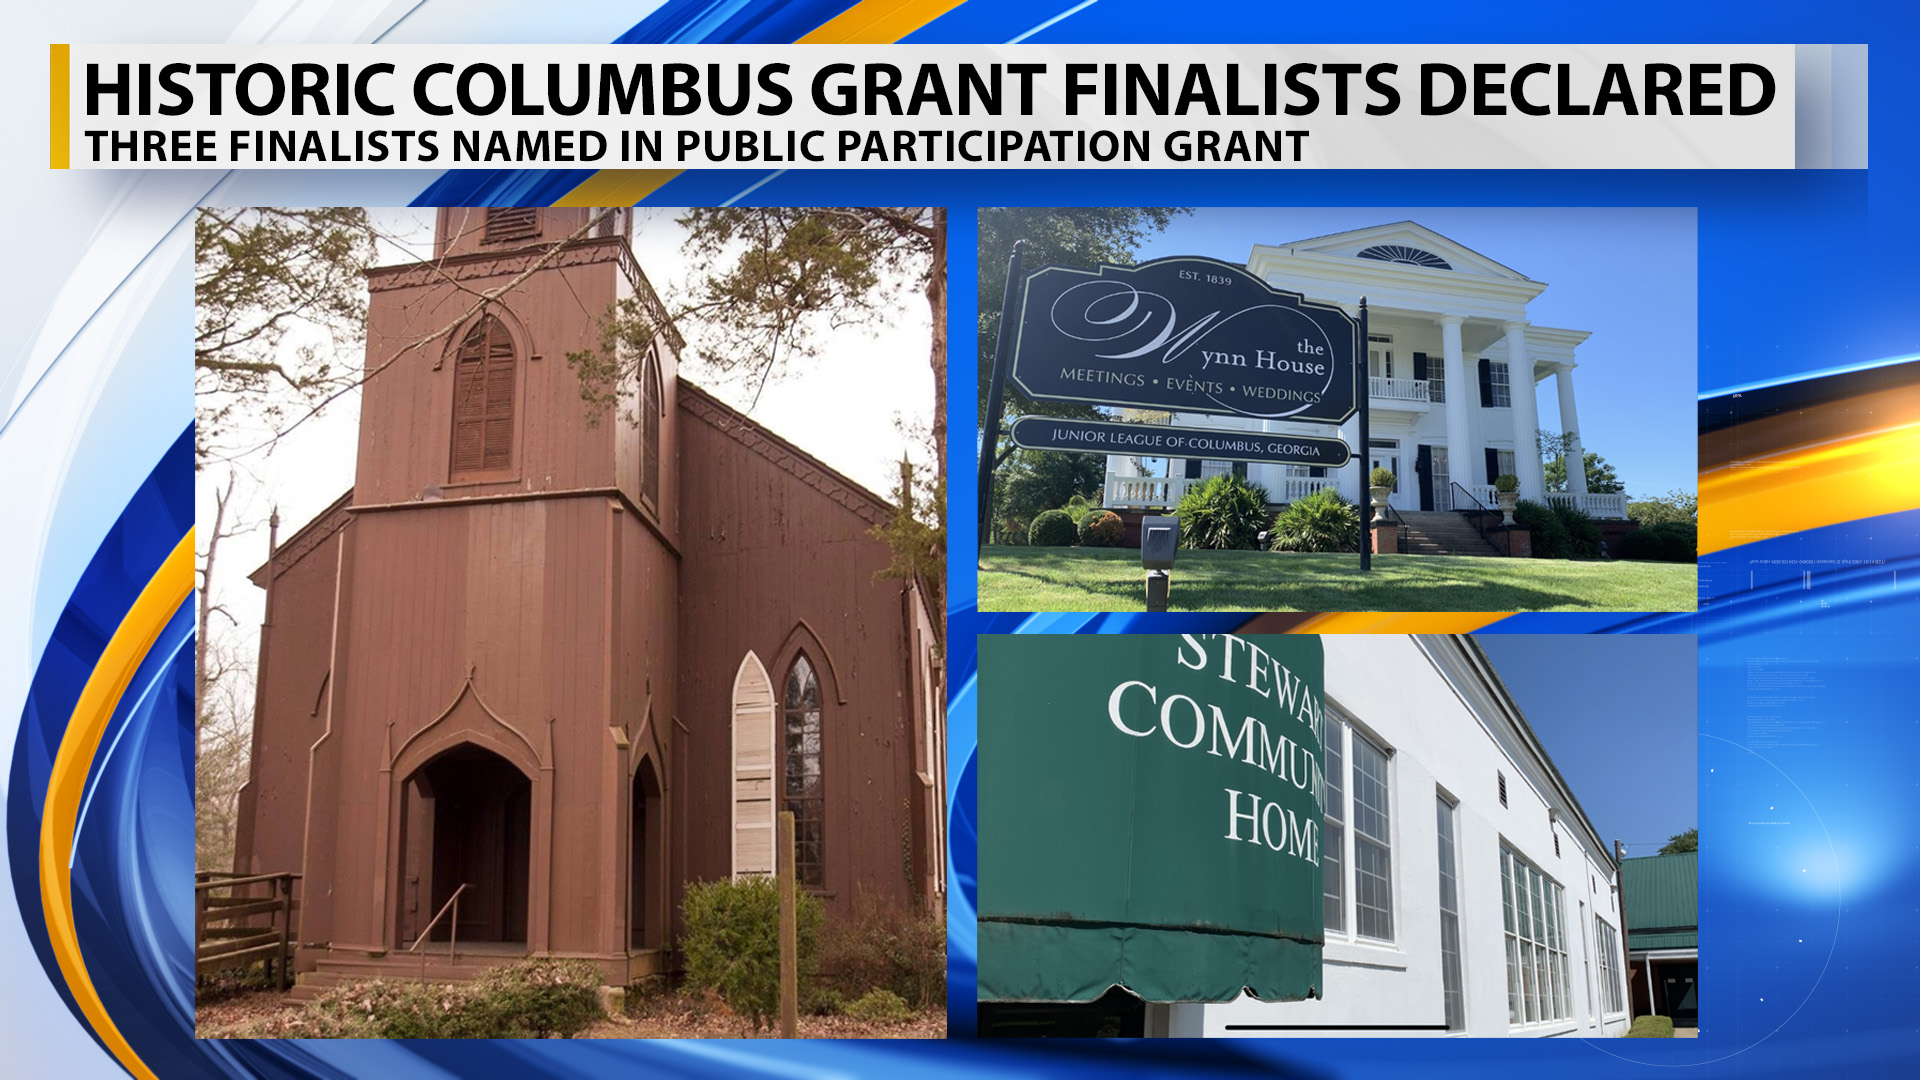 Historic Columbus announces three finalists for $100,000